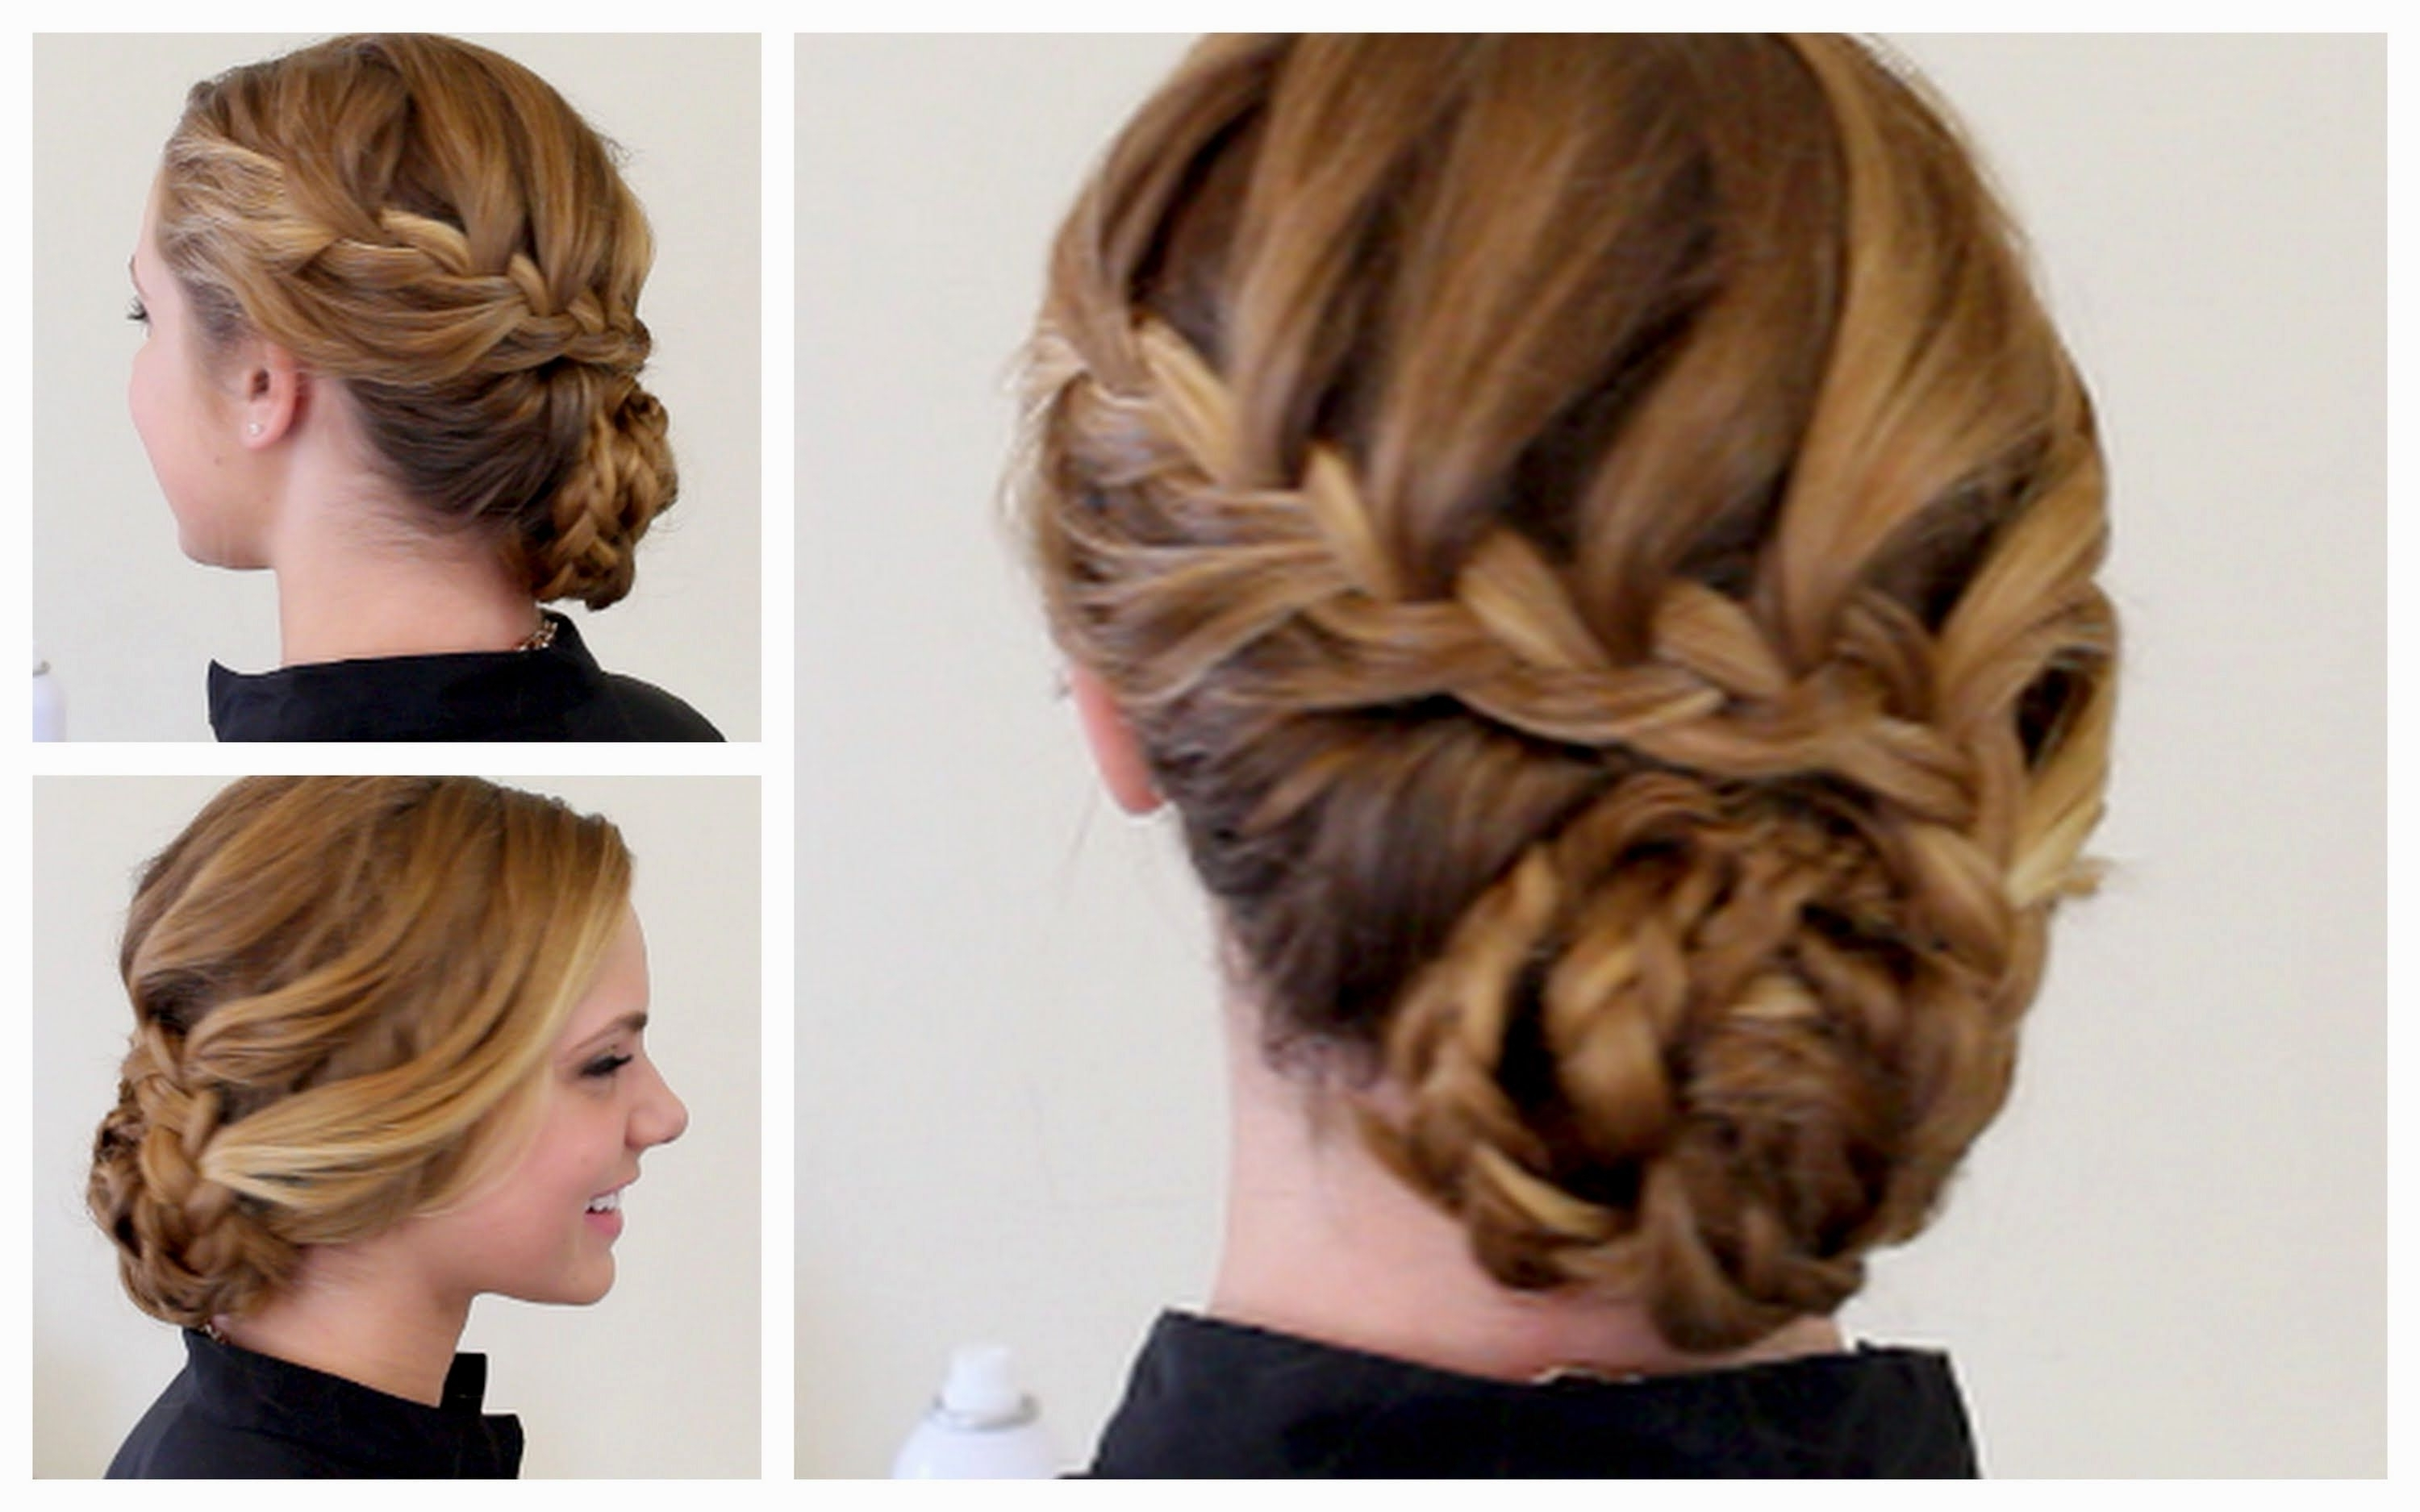 Hair Updos For Medium Hairstyle Fodo Women Man Formal Hairstyles Within Updo Medium Hairstyles (View 12 of 15)